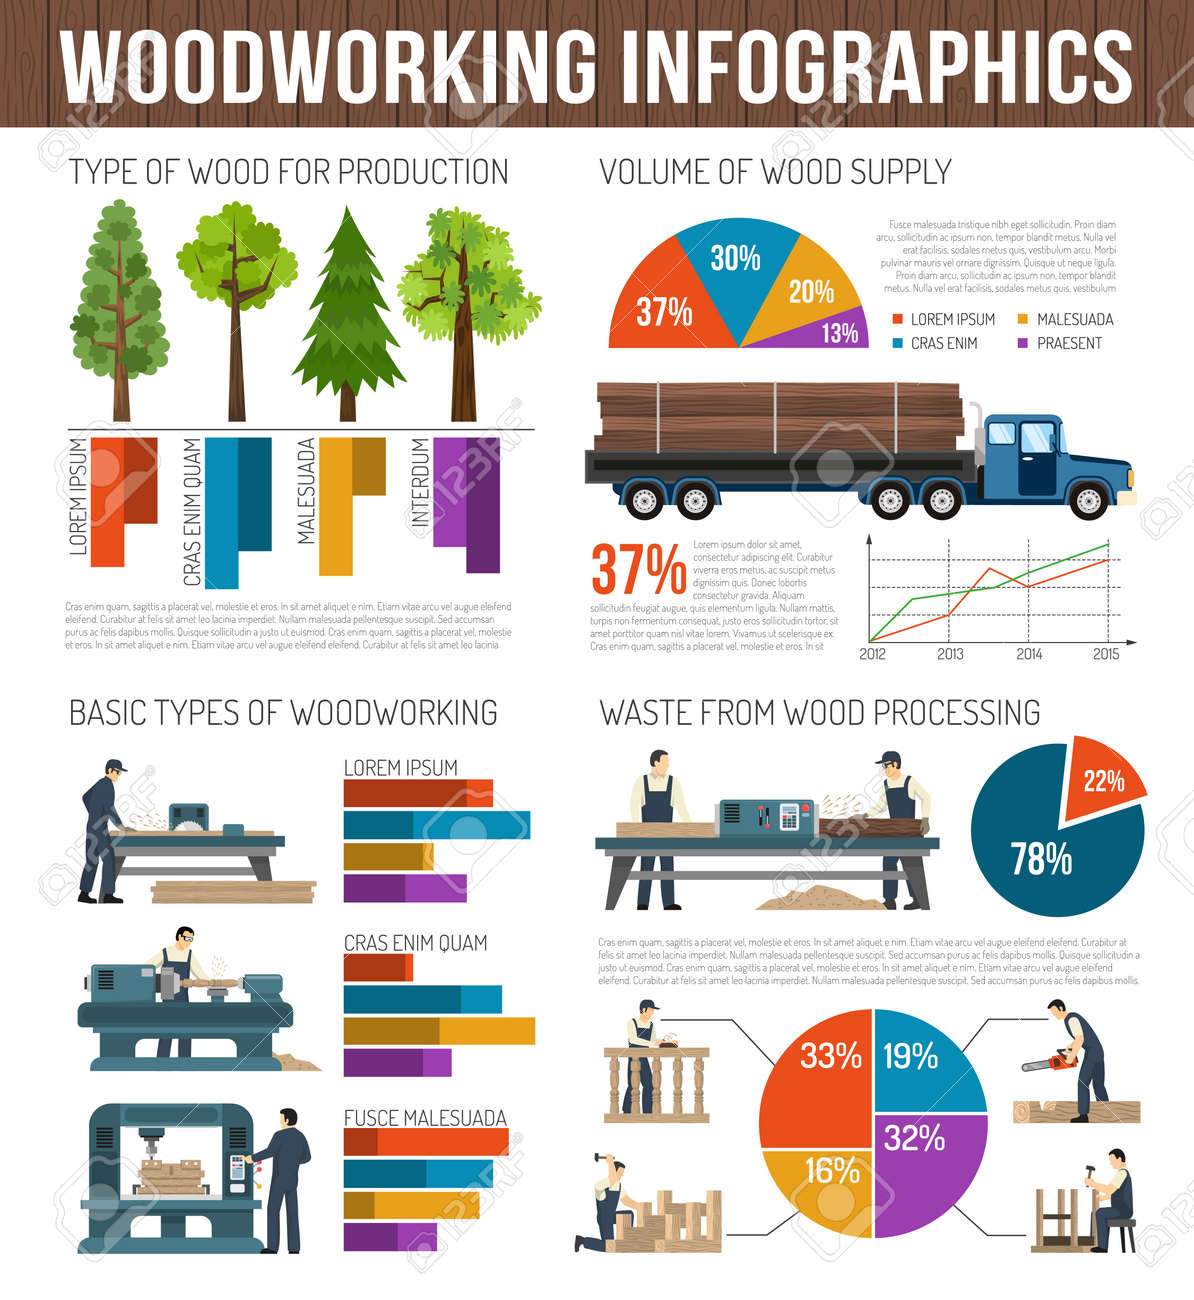 Woodworking infographics composition with images of trees trucks machinery and equipment with text and circular graphs vector illustration - 166007817